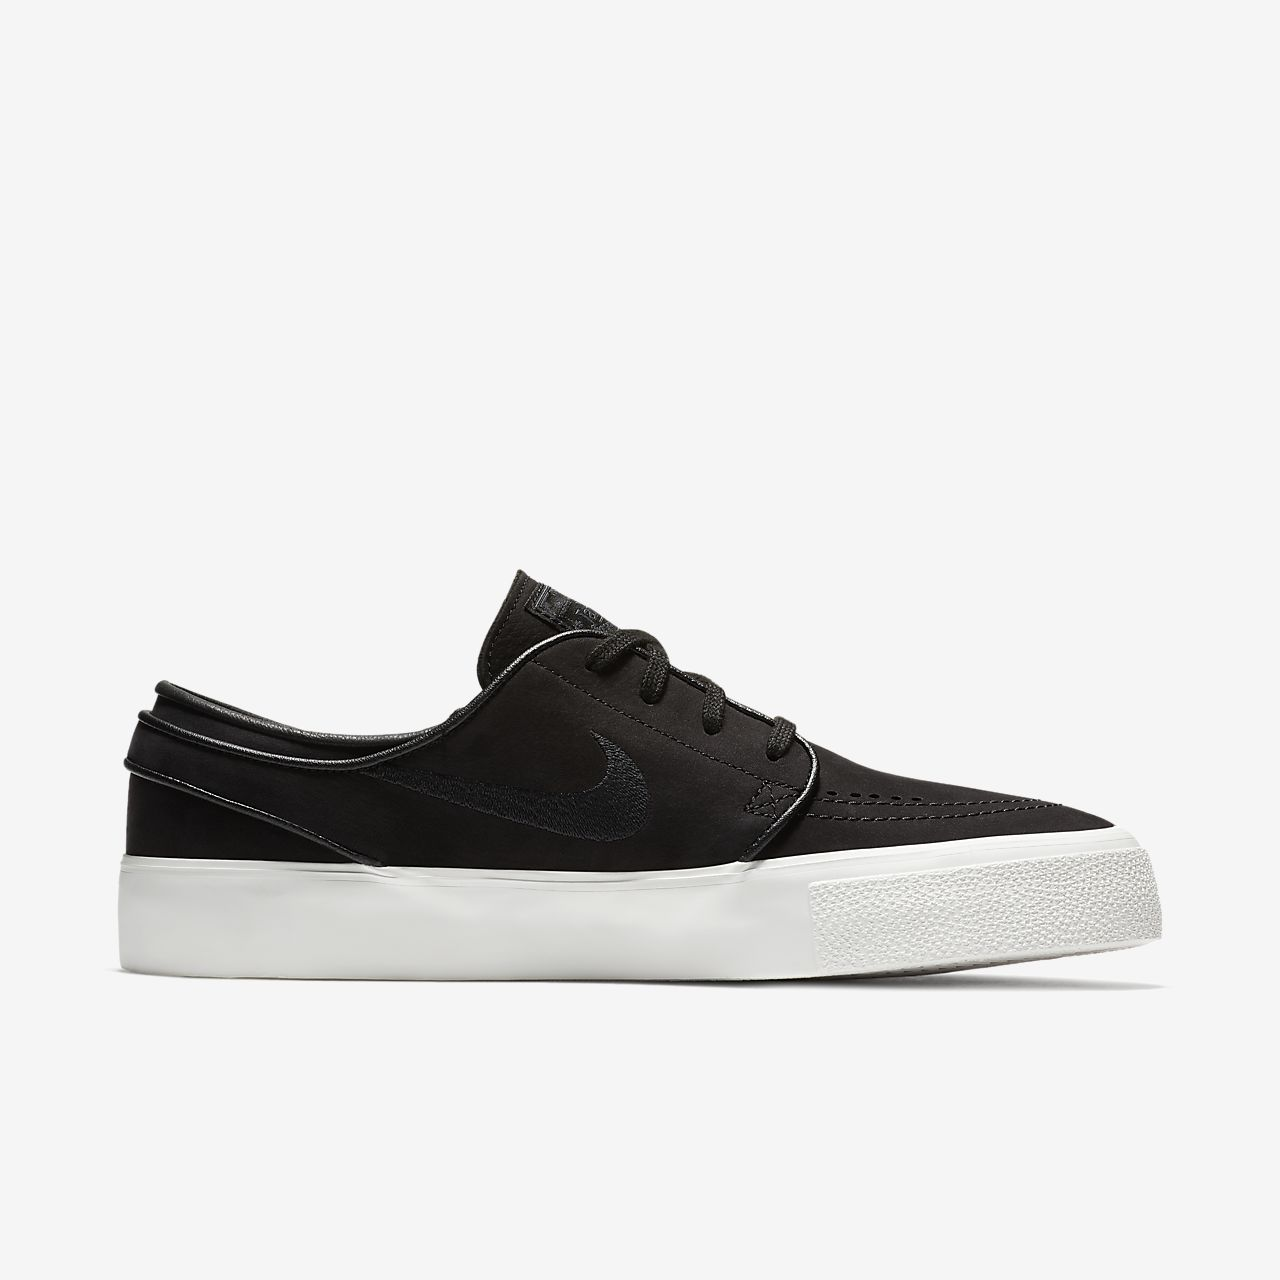 ... Nike SB Zoom Stefan Janoski High Tape Deconstructed Men's Skateboarding  Shoe